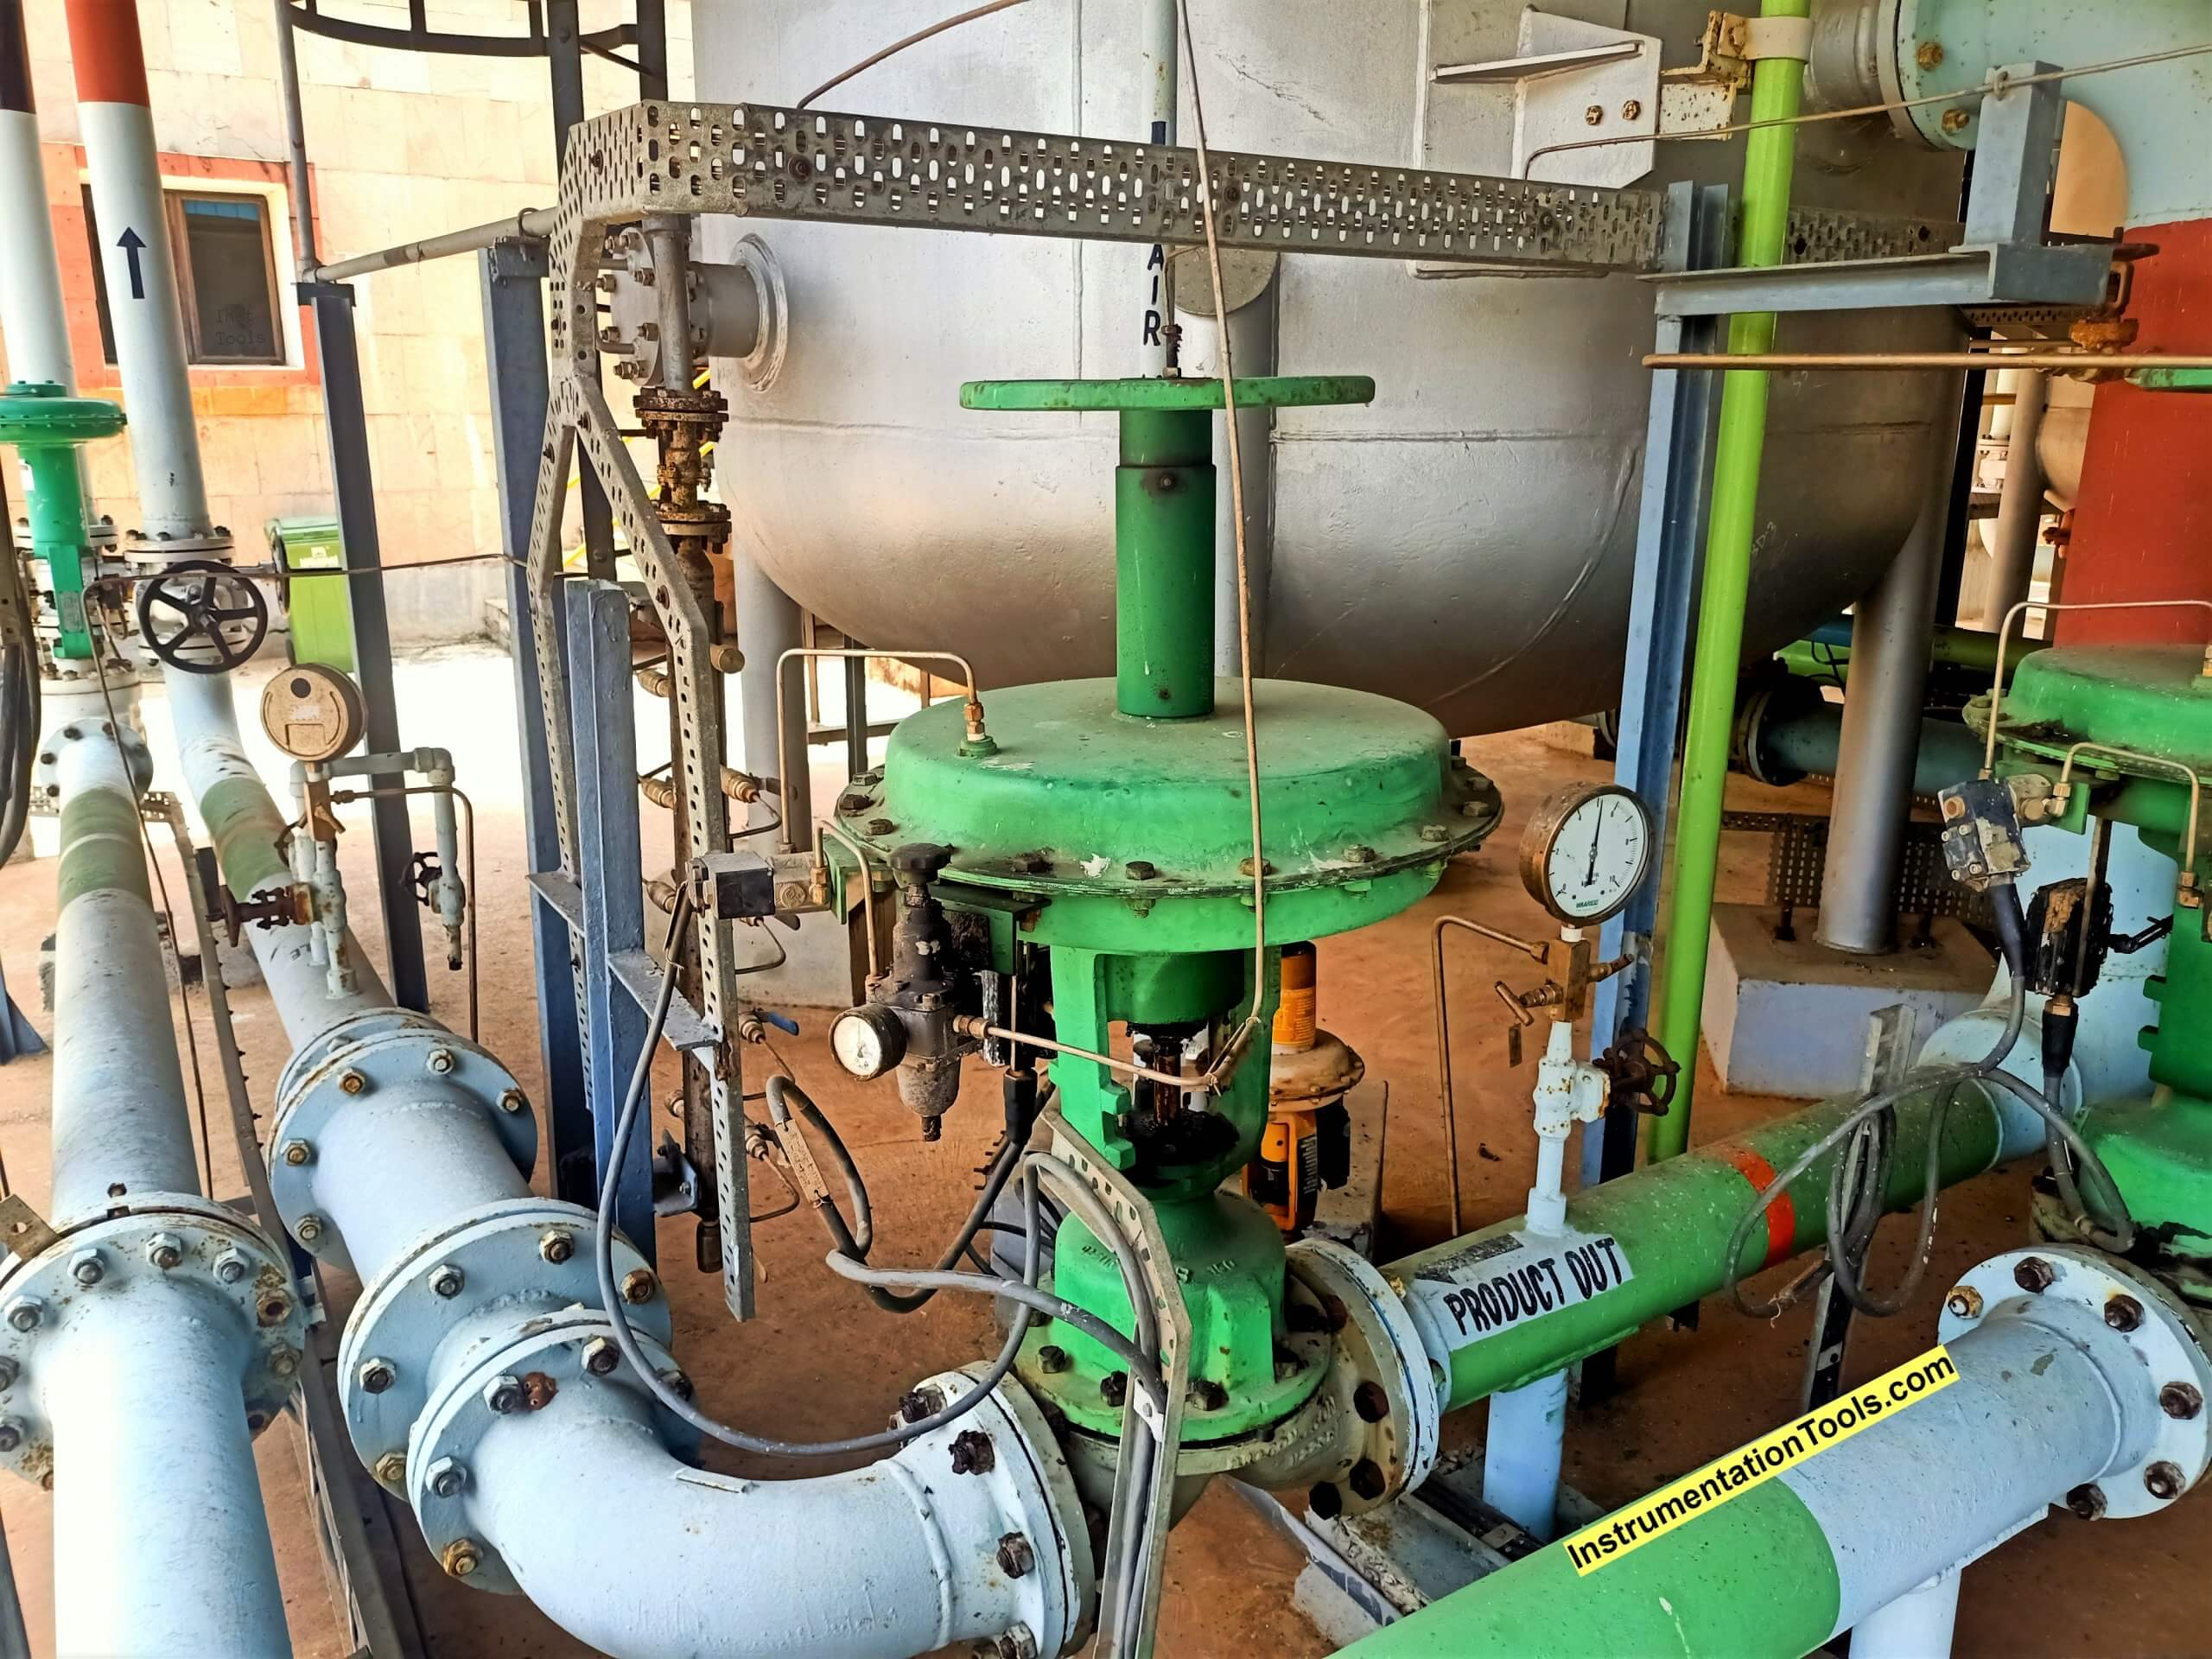 Passing Control Valves Cause Yearly Losses